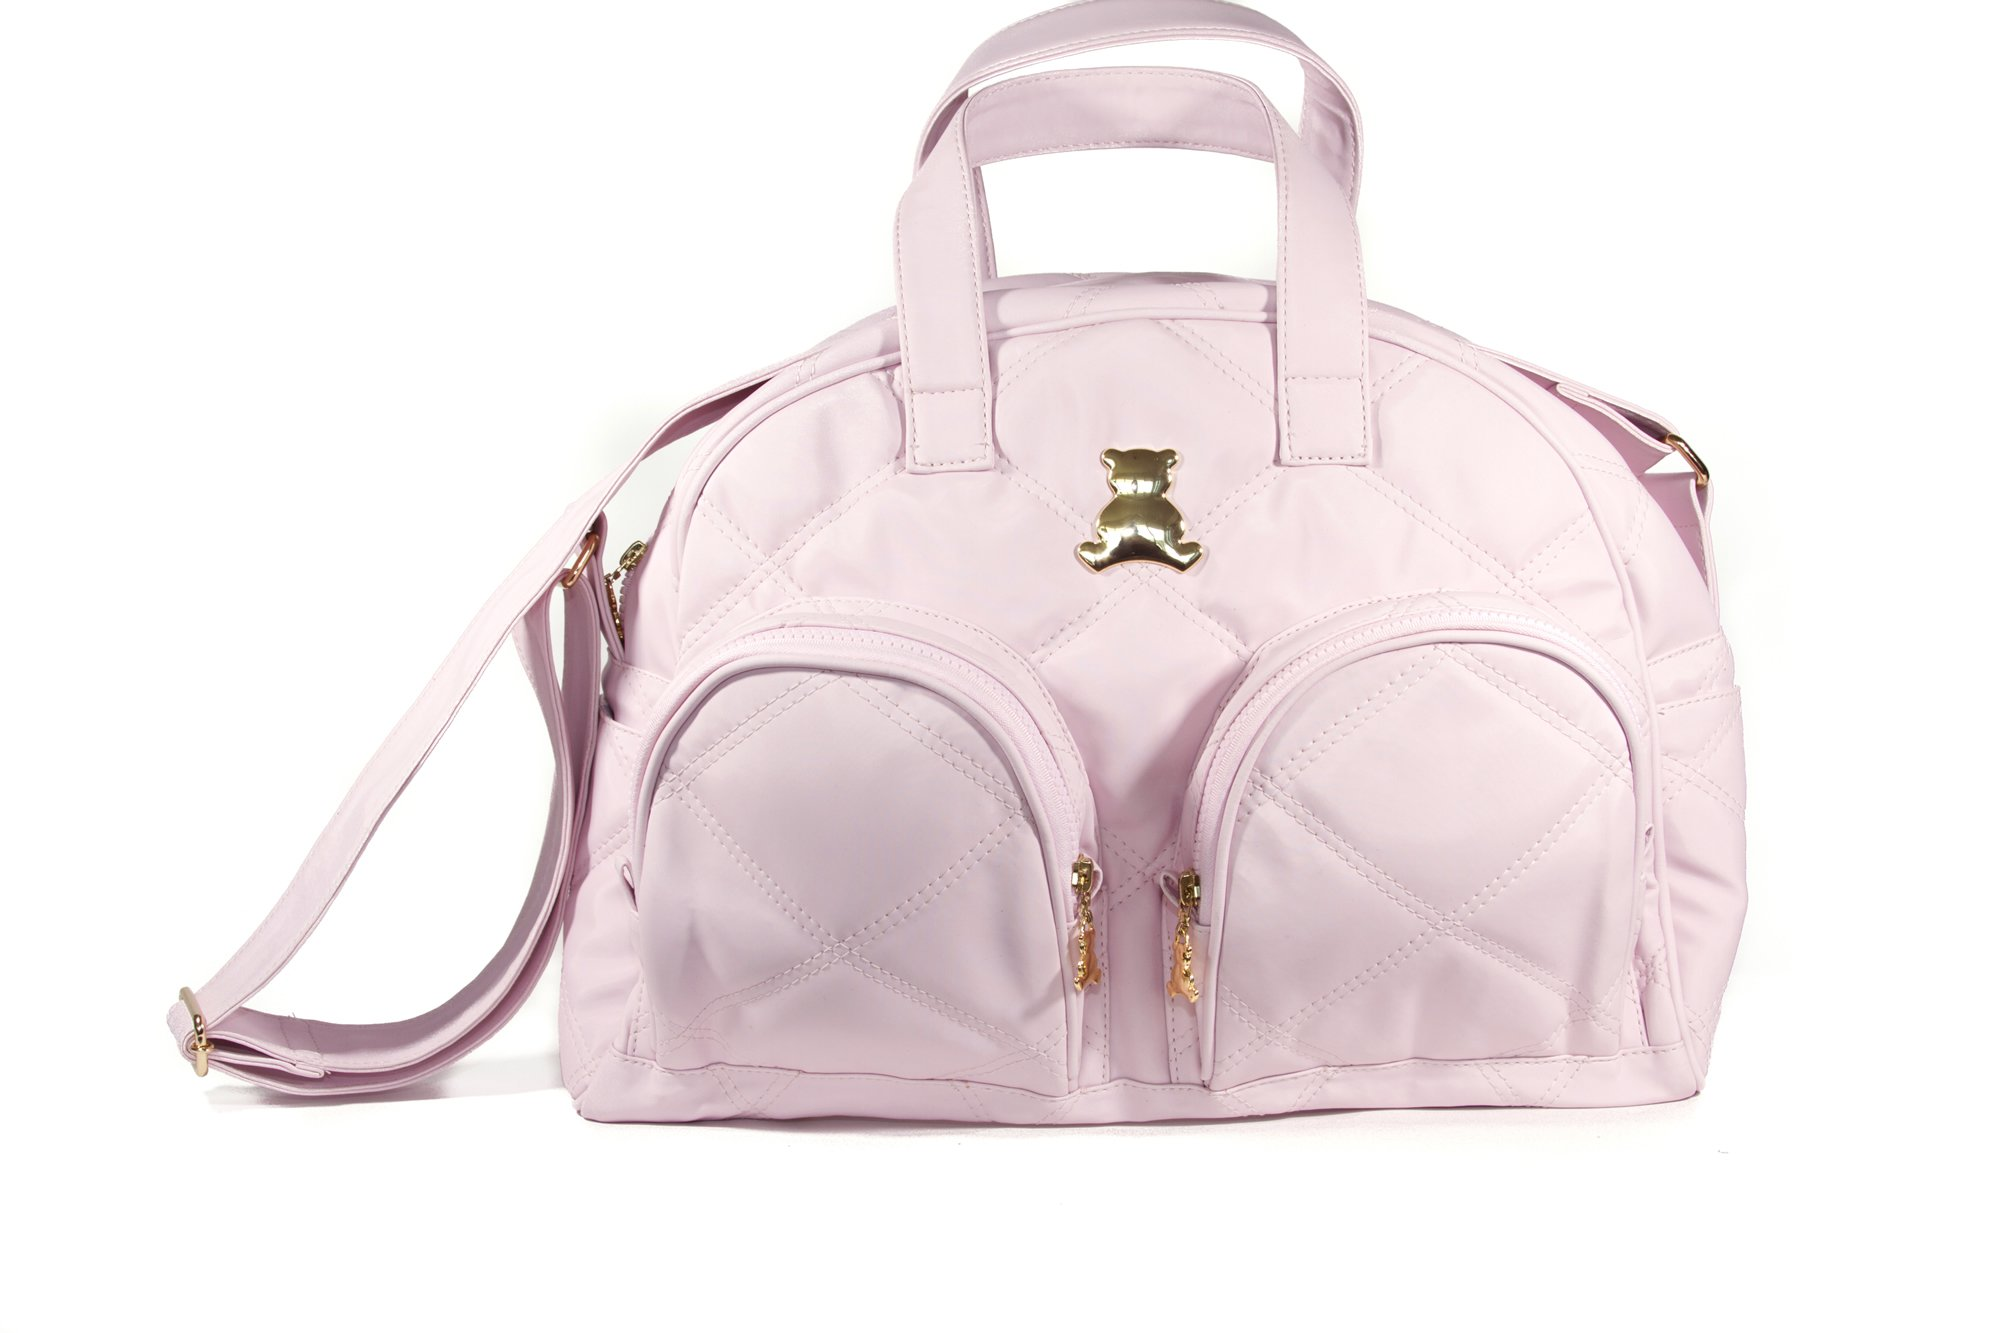 BL BABY - Elegance Collec. - MED - Crossbody Bag - Themal & Front Pockets - Pink - 6x15x9''